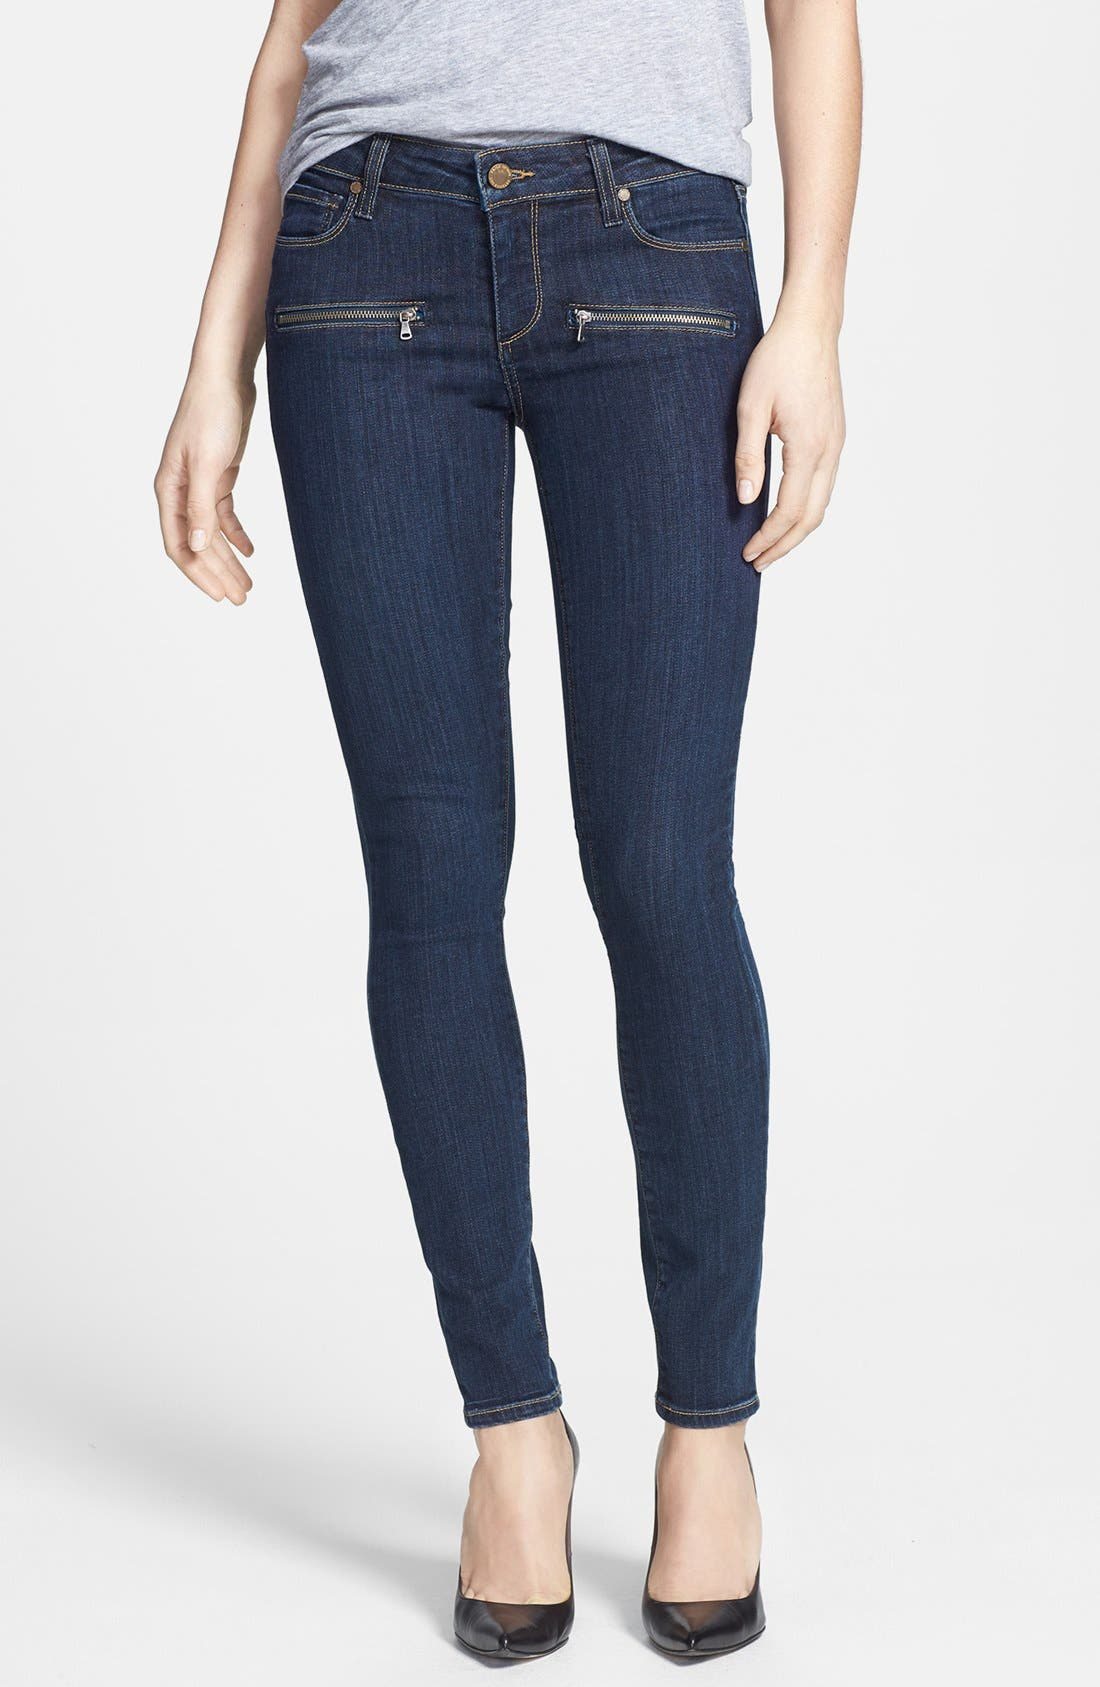 Alternate Image 1 Selected - Paige Denim 'Indio' Zip Detail Ultra Skinny Jeans (Delancy No Whiskers)